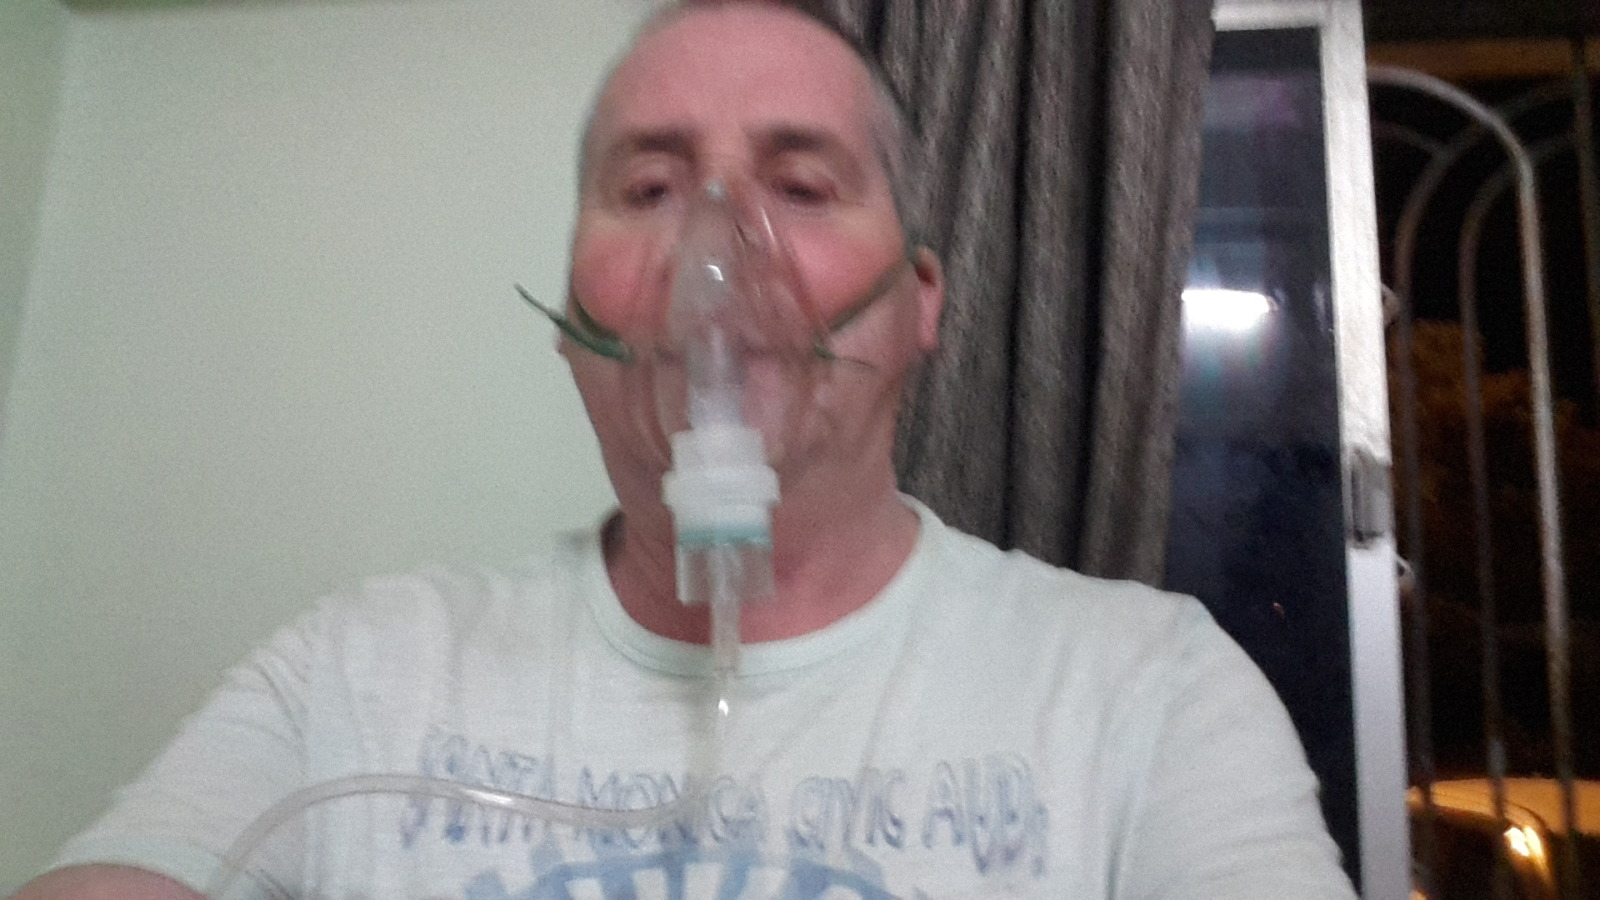 Garry McGivern on a nebuliser.